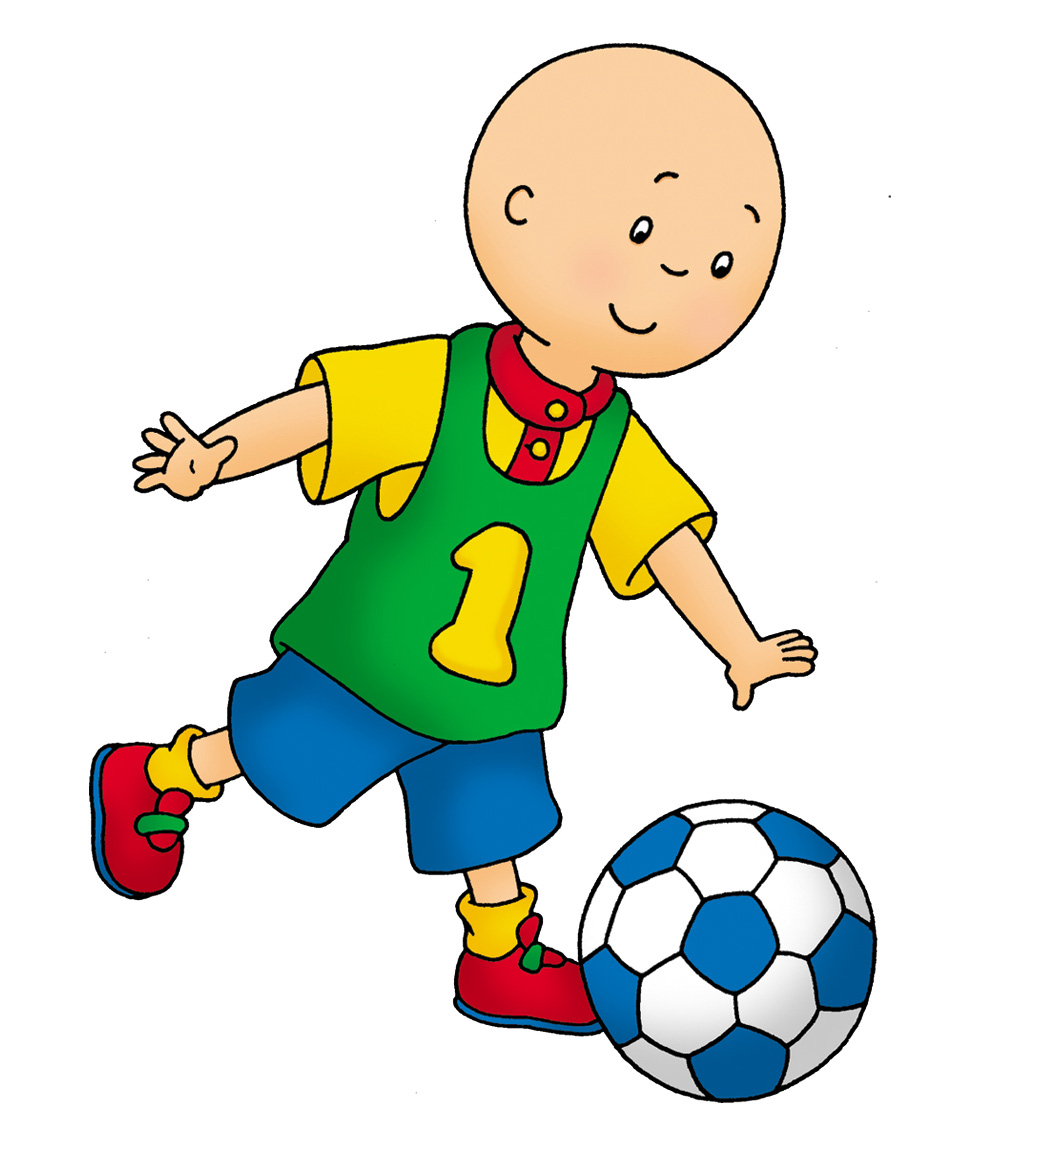 Caillou football